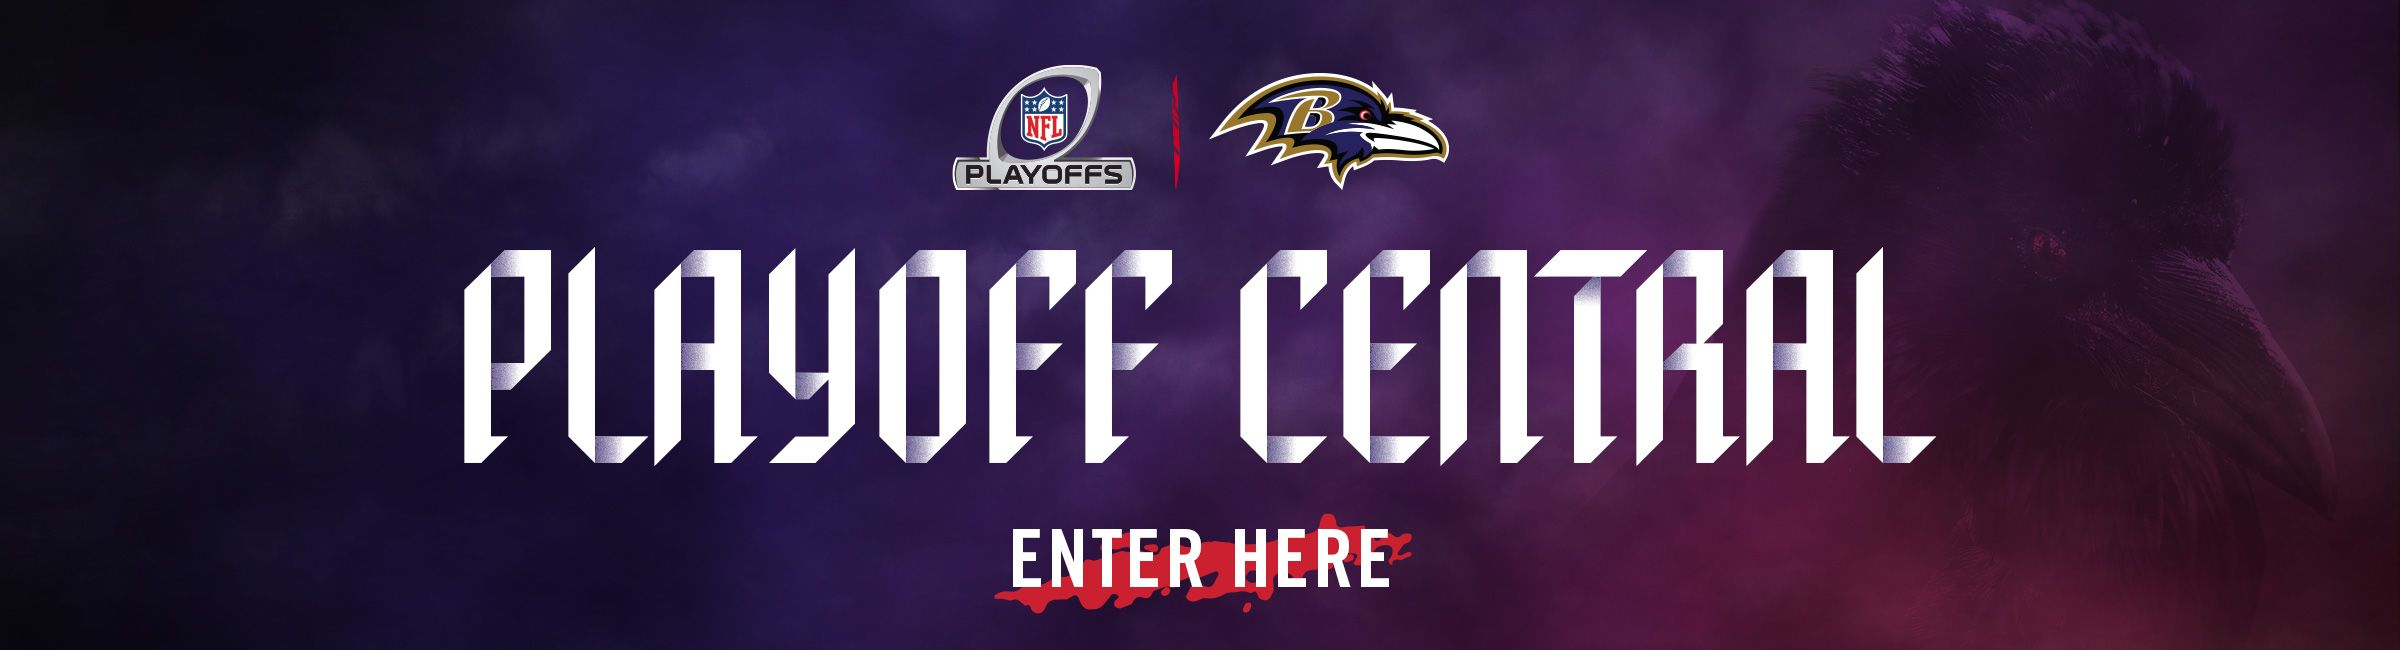 Ravens Playoff Central